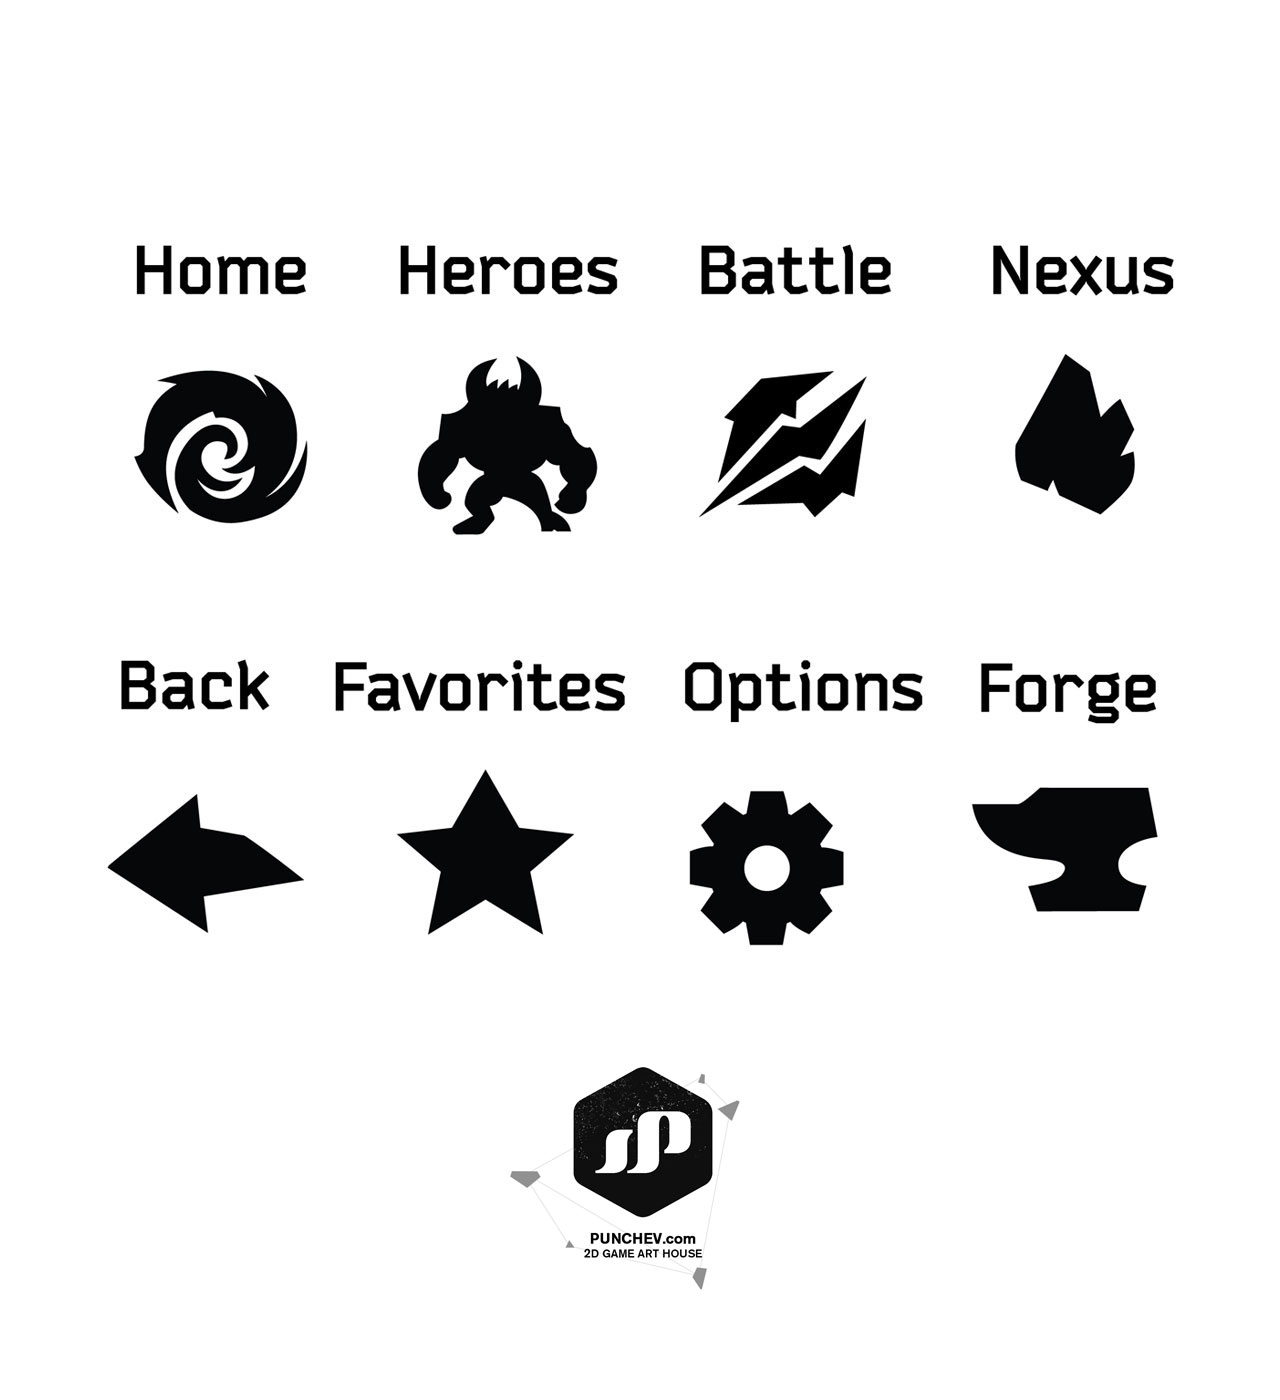 chillingo-nexusheroes-gameui-ux-interface-icons